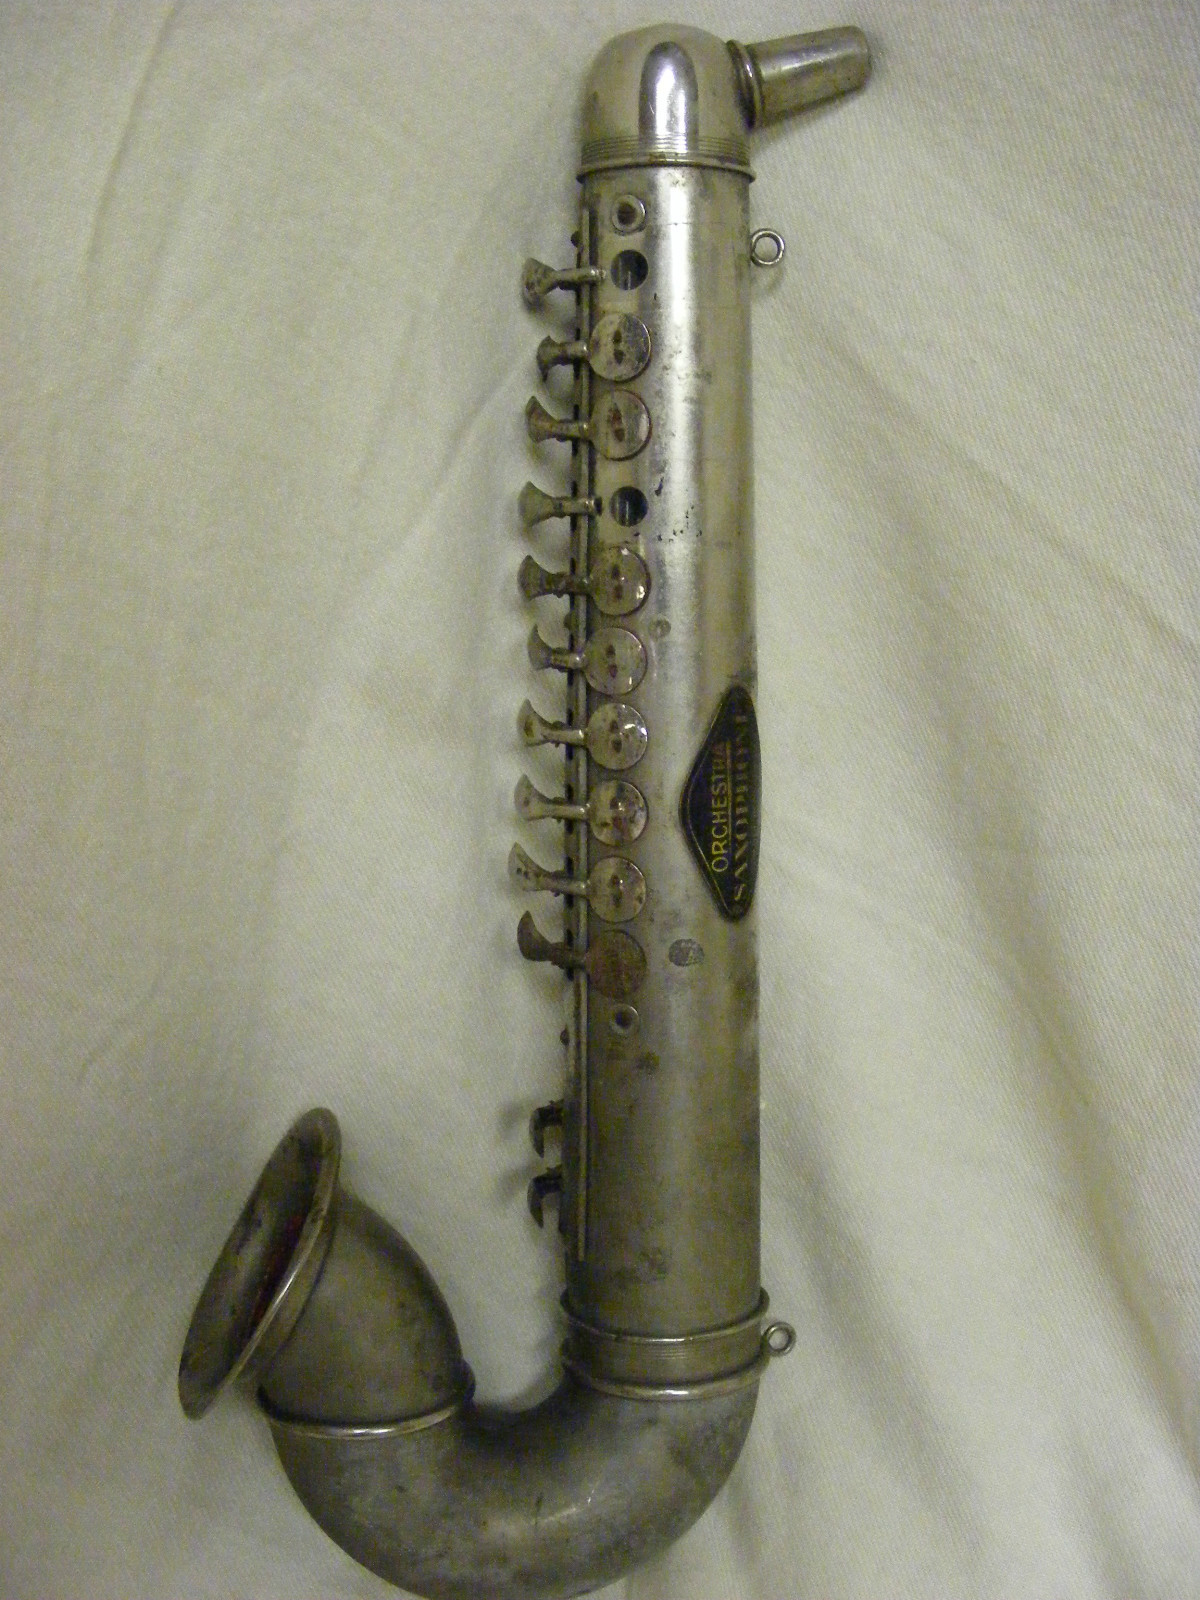 German blow accordion, Orchestra Saxophone, vintage, pre-WWII